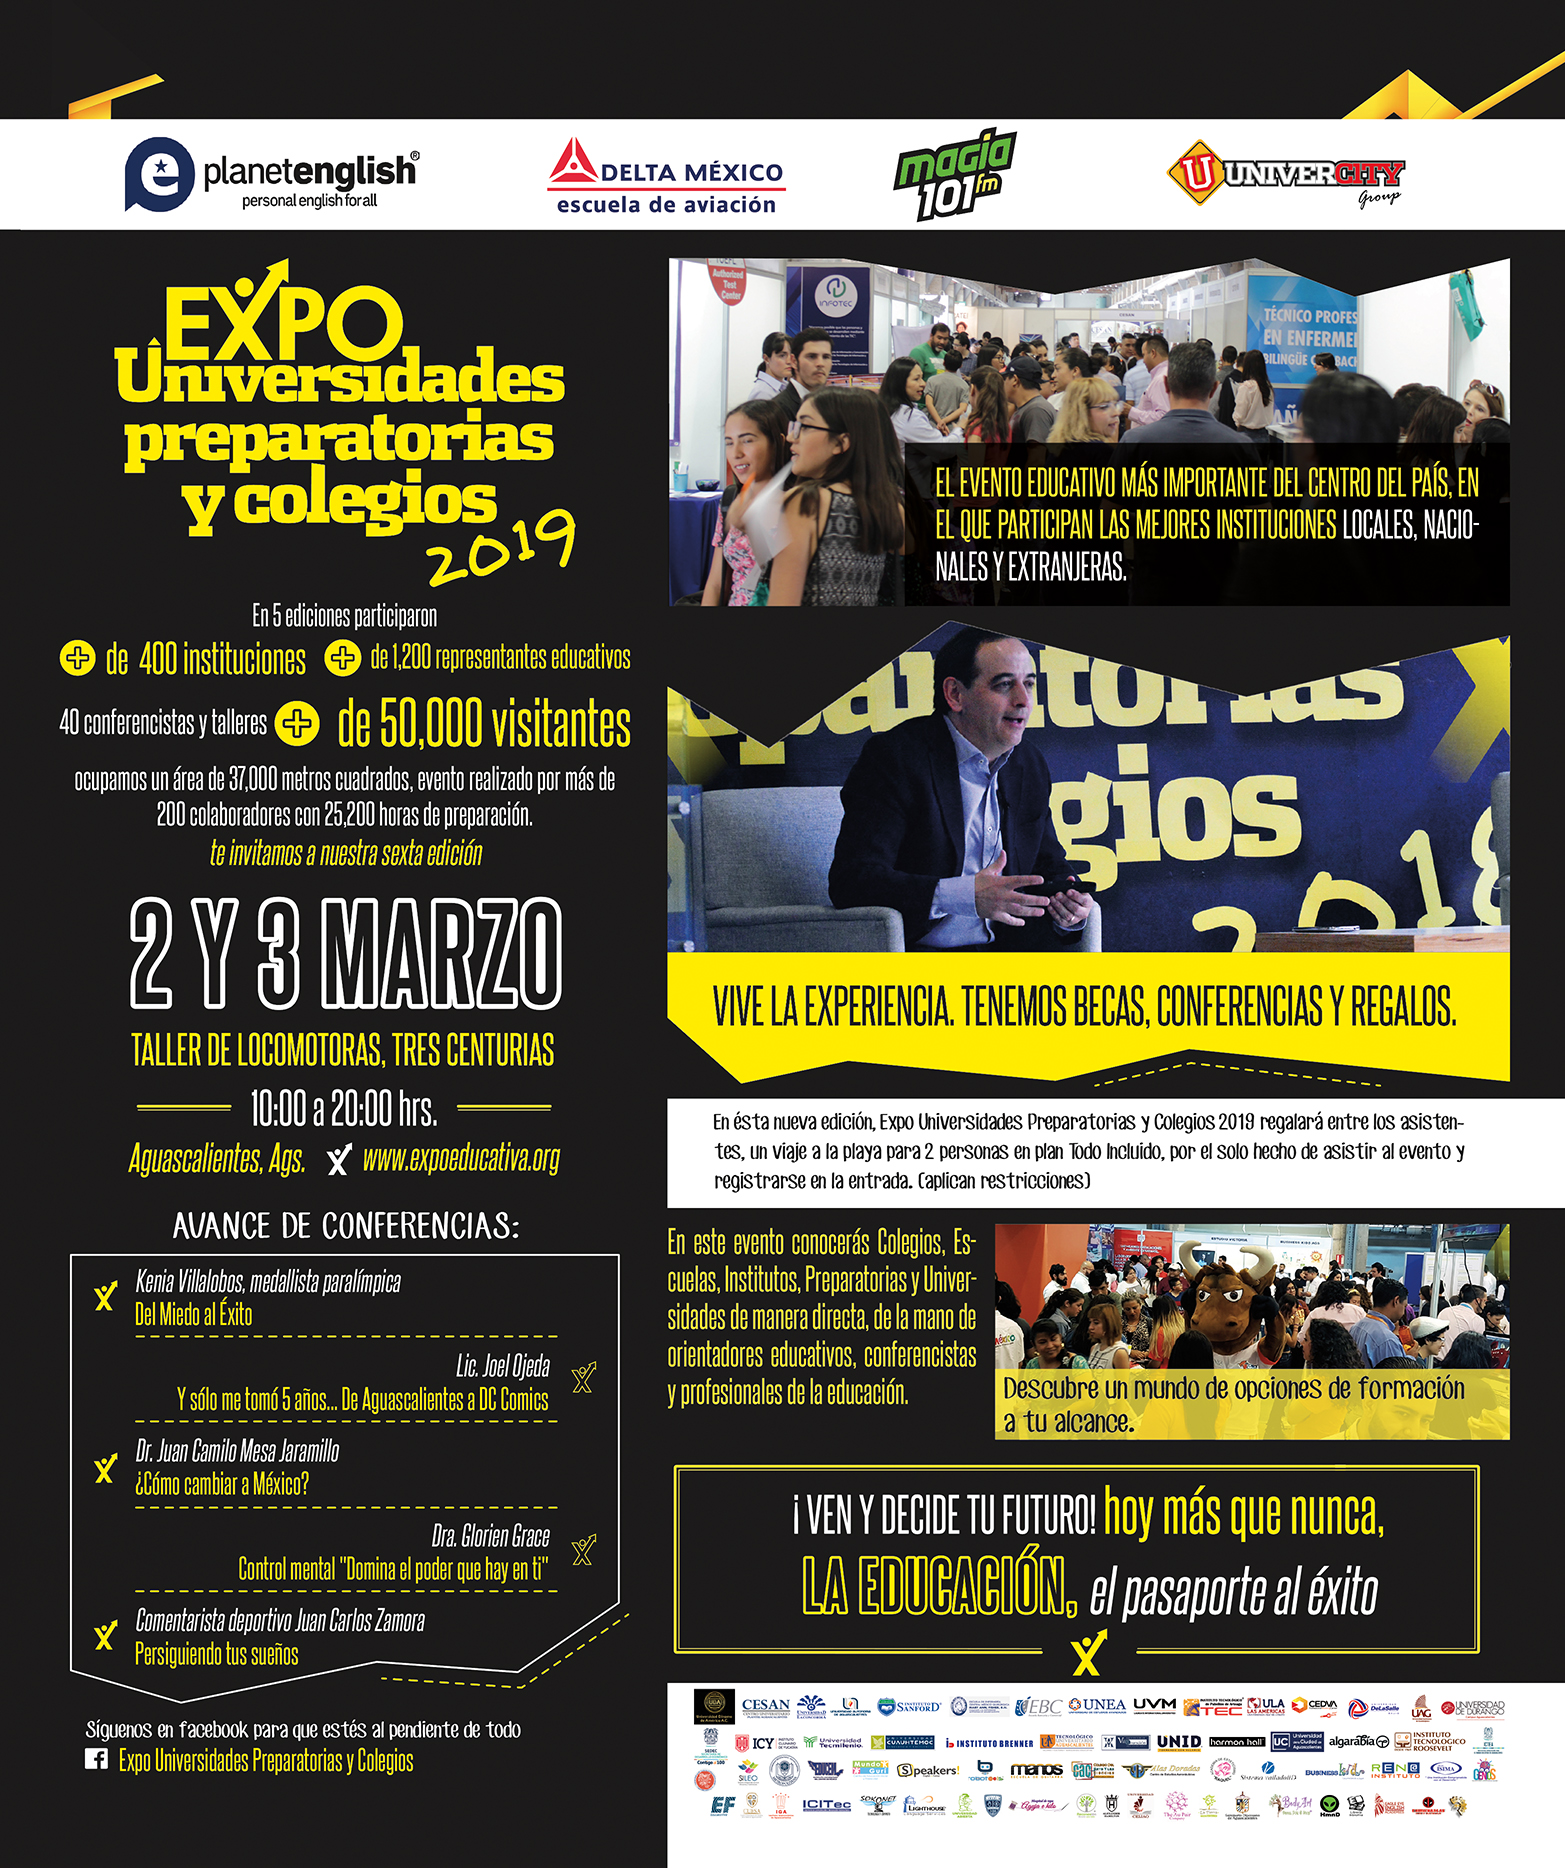 EXPO UNIVERSIDADES